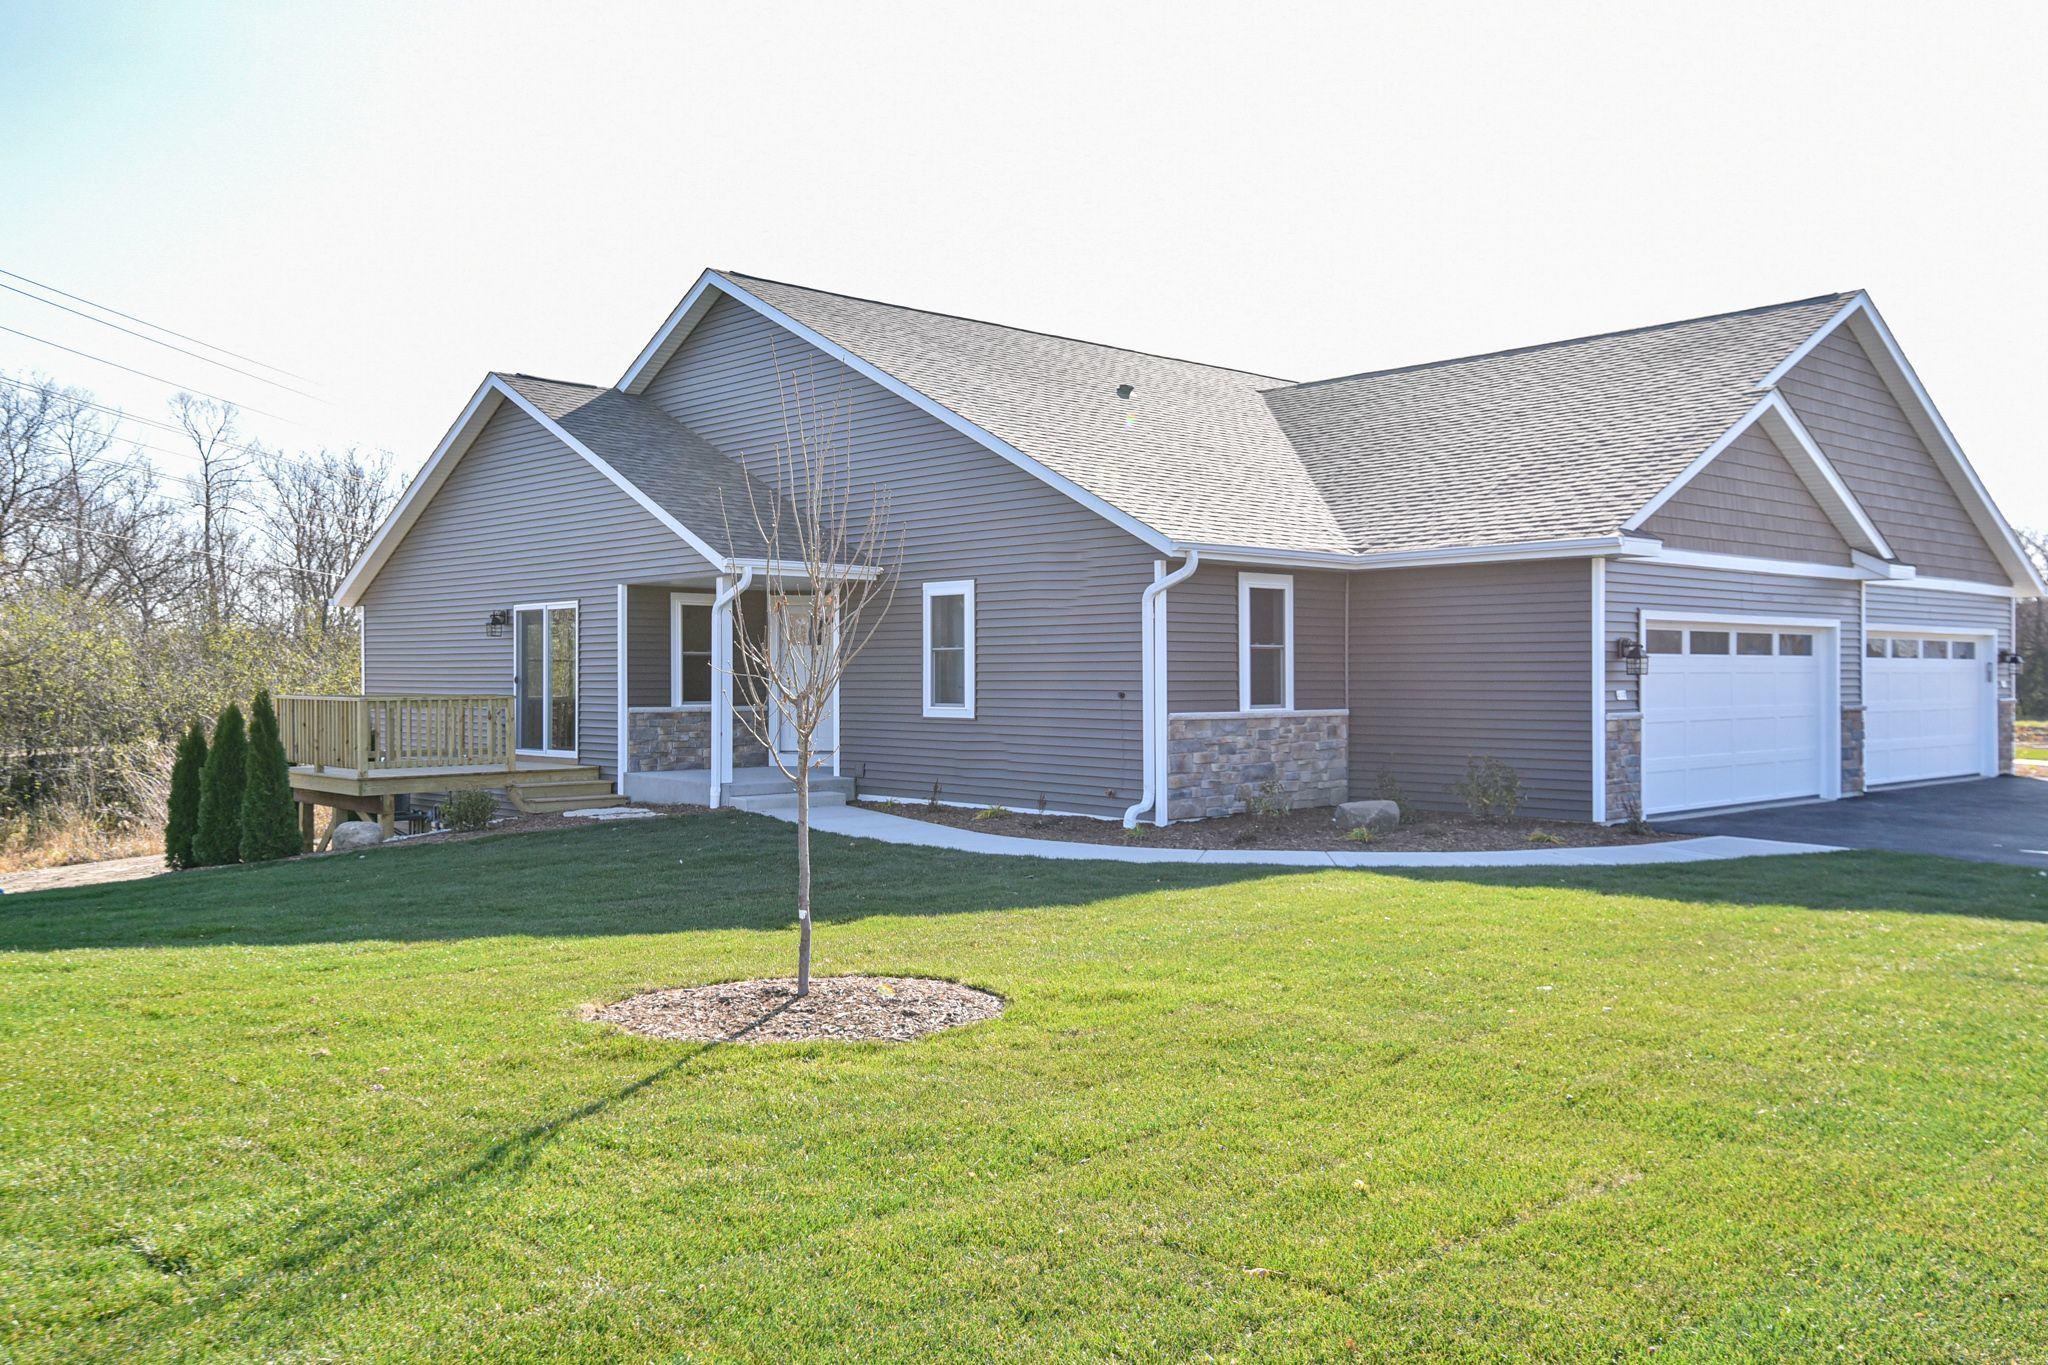 301 Trailview Crossing, Waterford, Wisconsin 53185, 2 Bedrooms Bedrooms, 5 Rooms Rooms,2 BathroomsBathrooms,Condominium,For Sale,Trailview Crossing,1721240